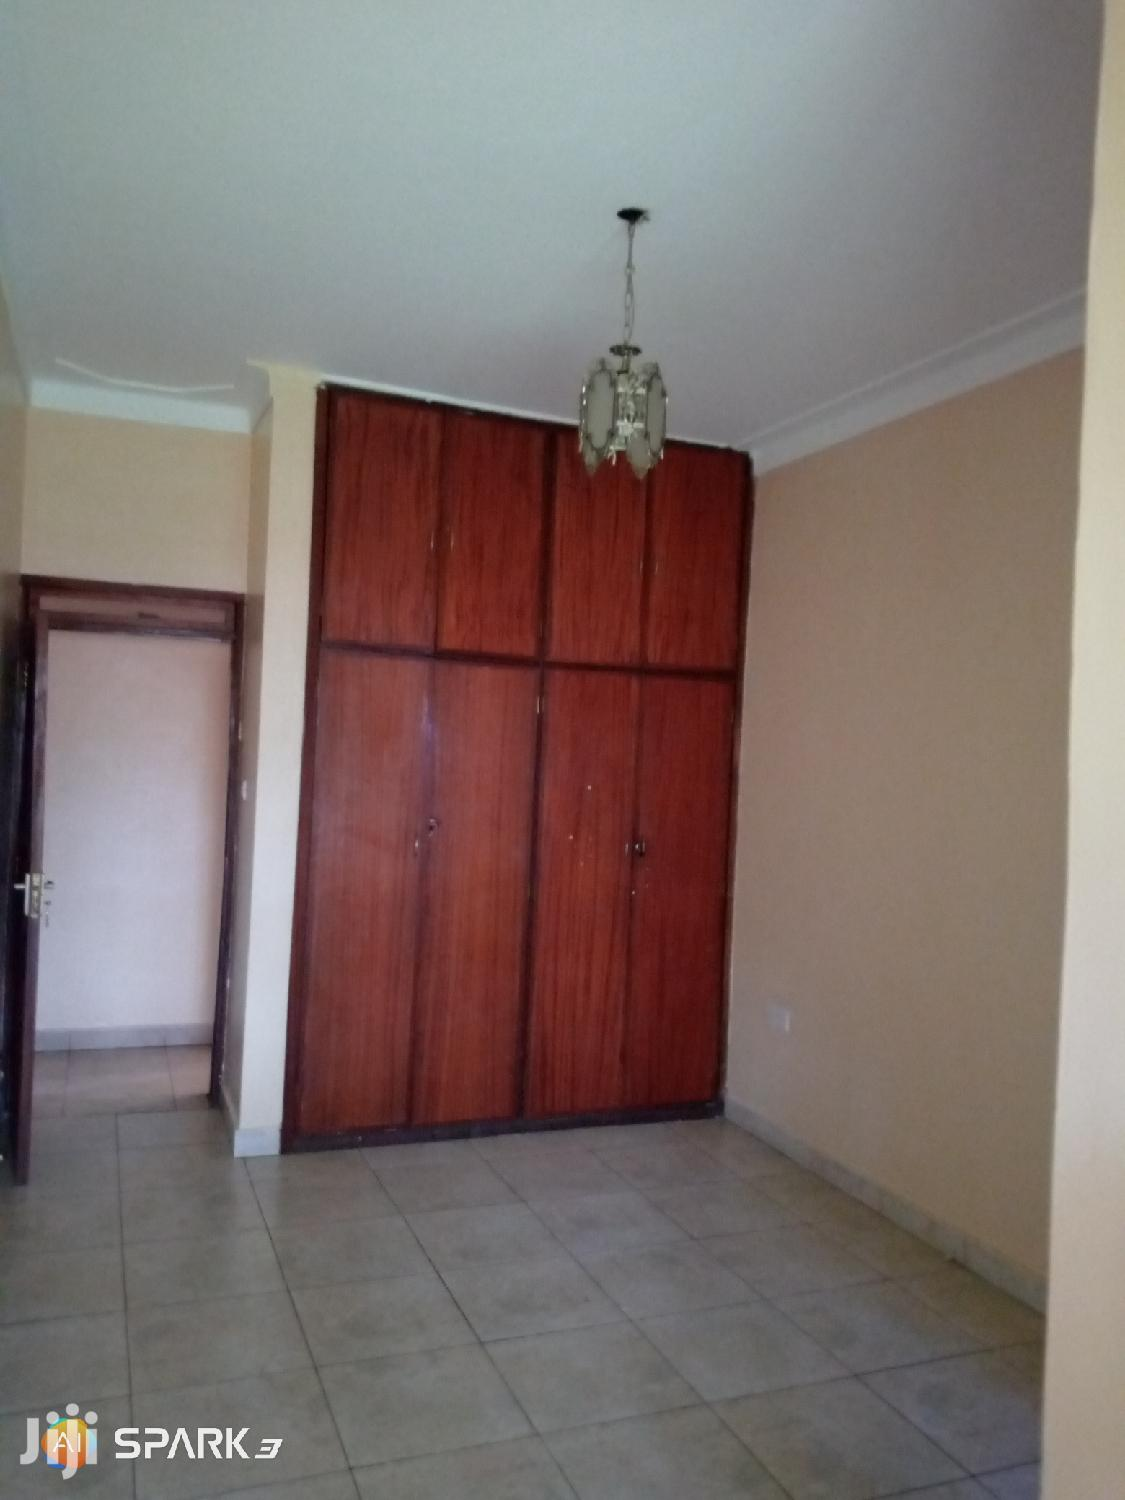 Four Bedroom Standalone House For Rent In Ntinda | Houses & Apartments For Rent for sale in Kampala, Central Region, Uganda